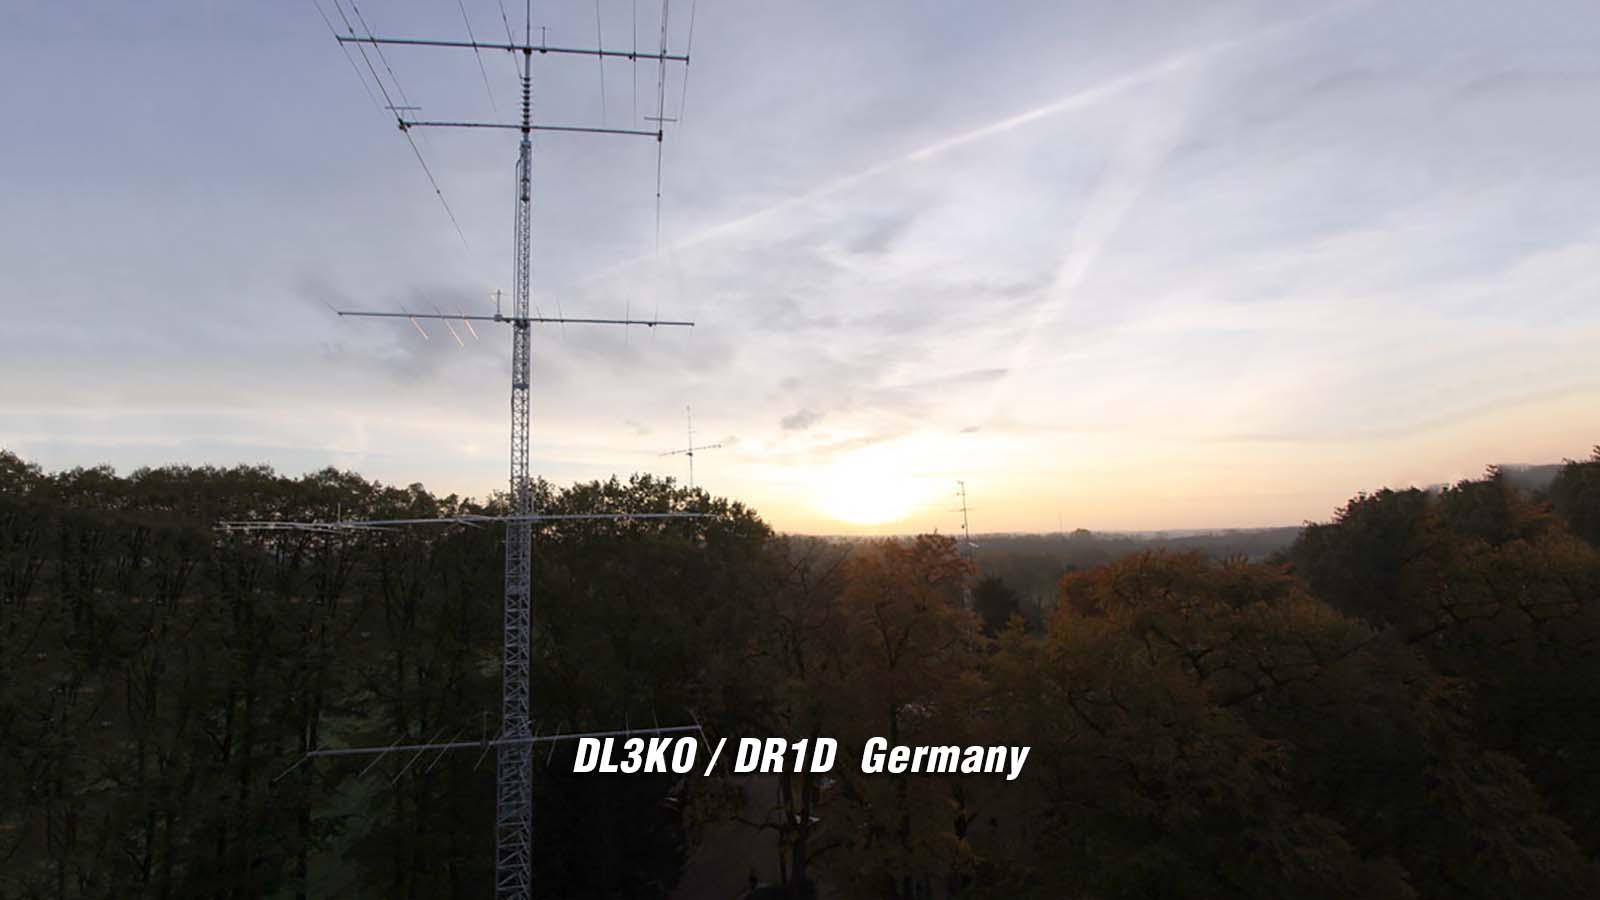 DL3KO Luso Tower